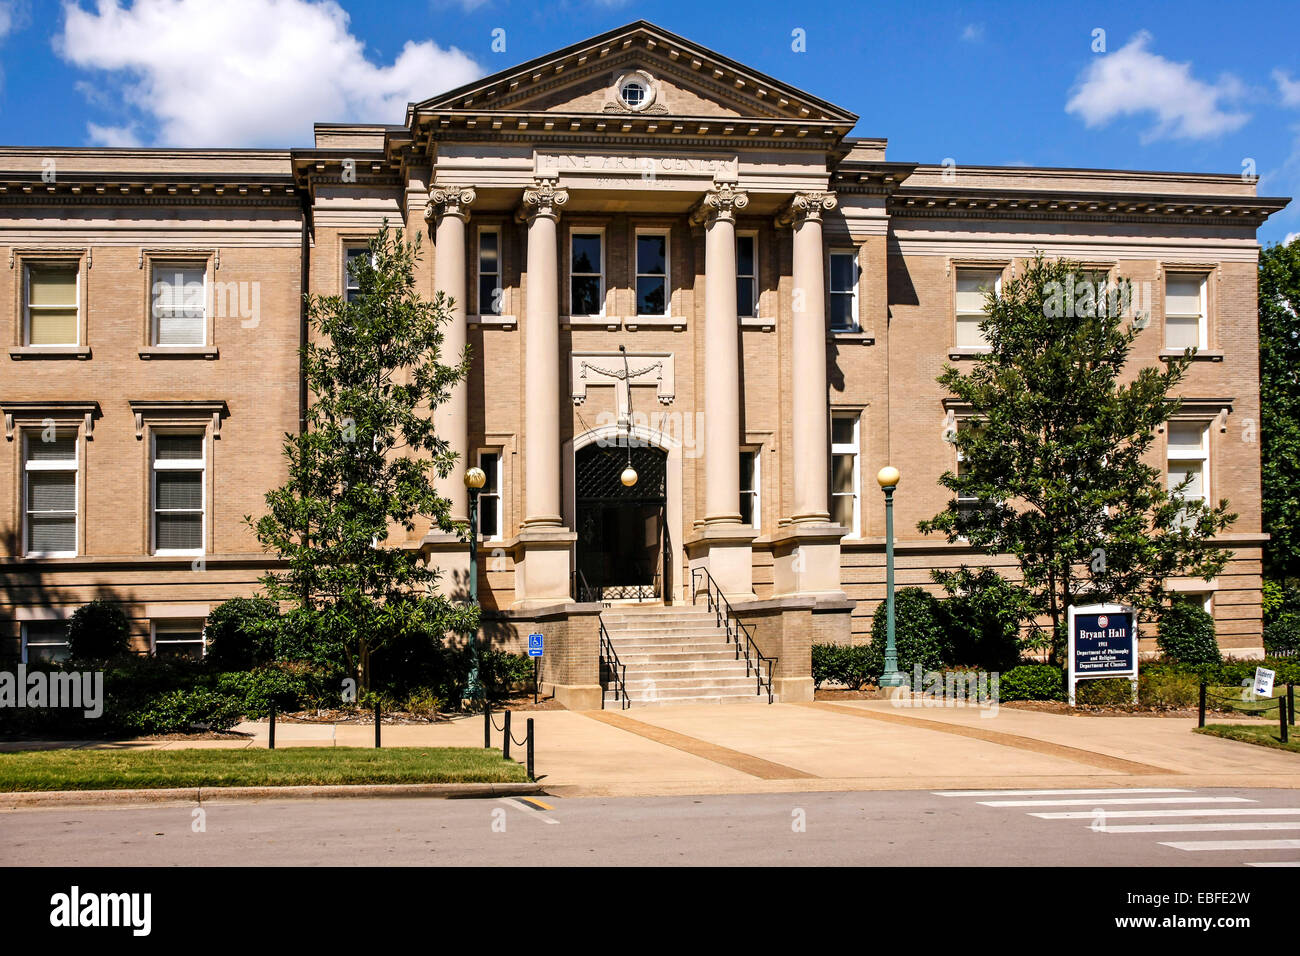 Bryant Hall - Fine Arts Center on the campus of 'Ole Miss' University of Mississippi, Oxford. - Stock Image